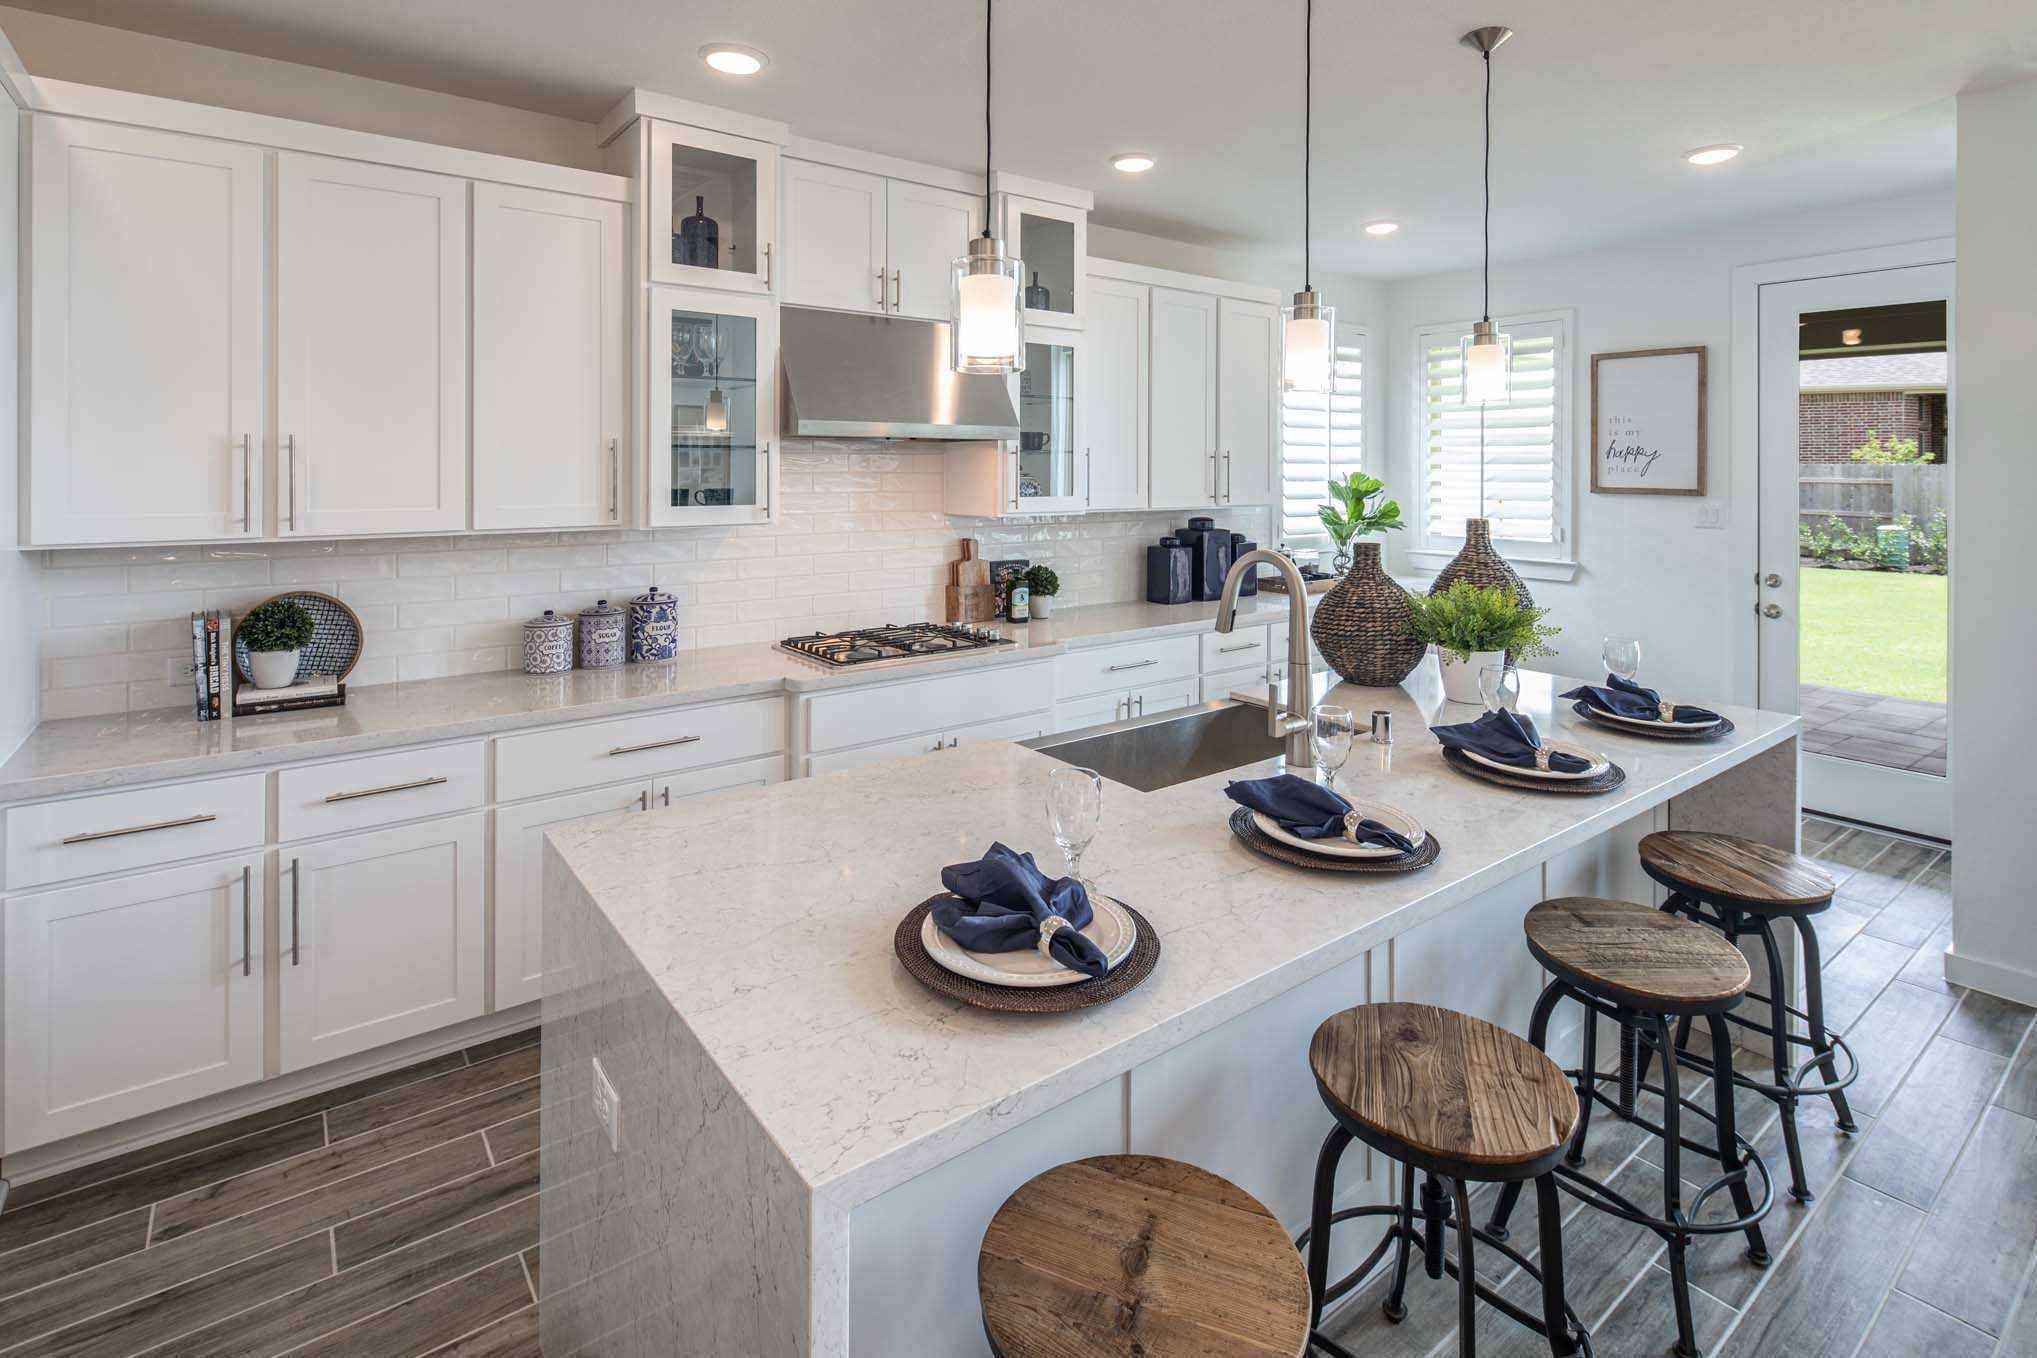 Kitchen featured in the Plan 556H By Highland Homes in Dallas, TX